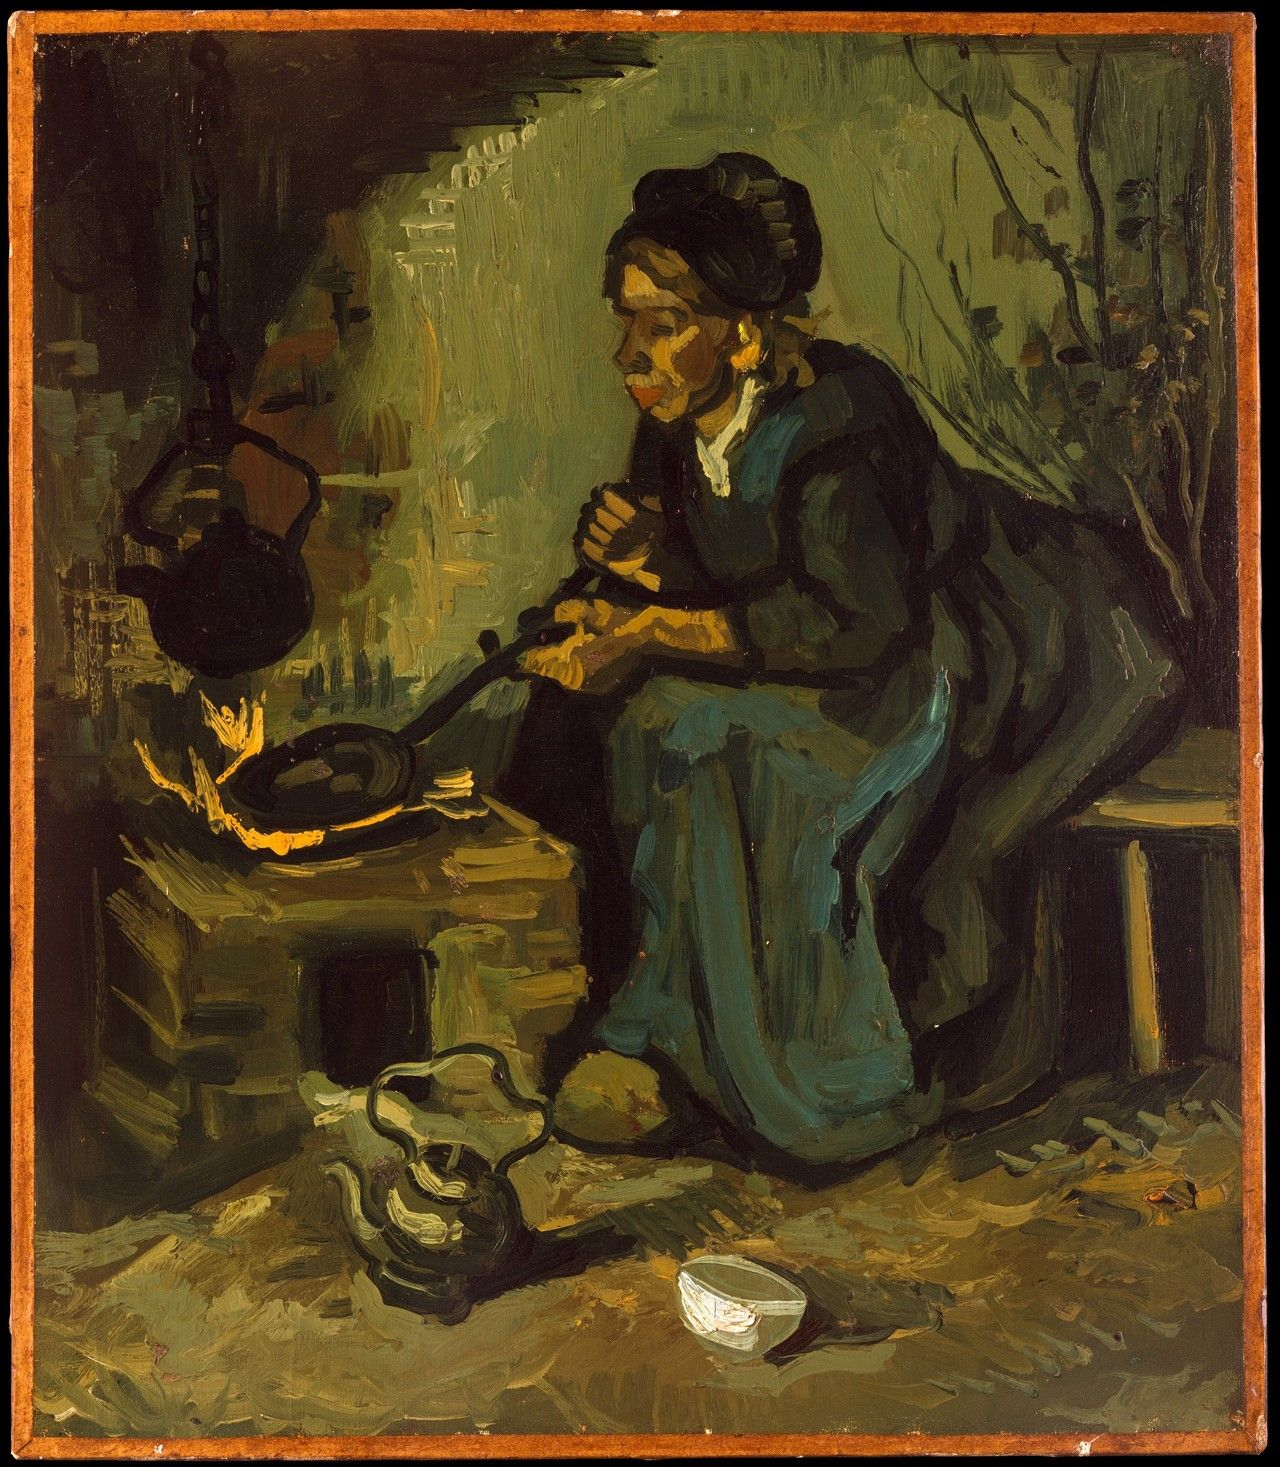 Vincent van Gogh-Peasant Woman Cooking by a Fireplace, 1885. Oil on canvas From the Metropolitan Museum of Art, NYC:  This work was painted in Nuenen in late spring 1885,